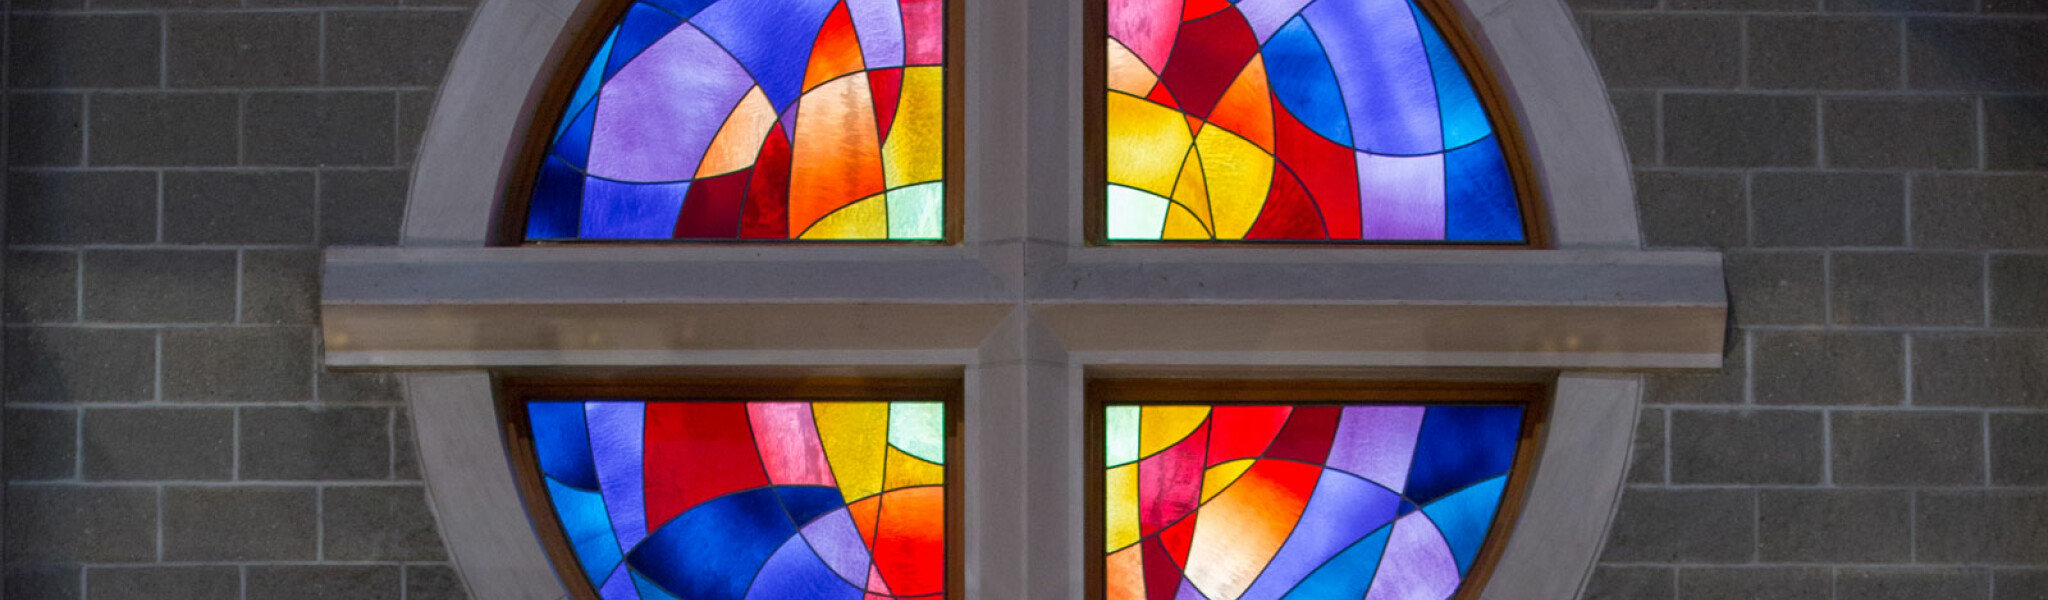 Counseling Services | Cornerstone Lutheran Church | Cornerstone Lutheran Church